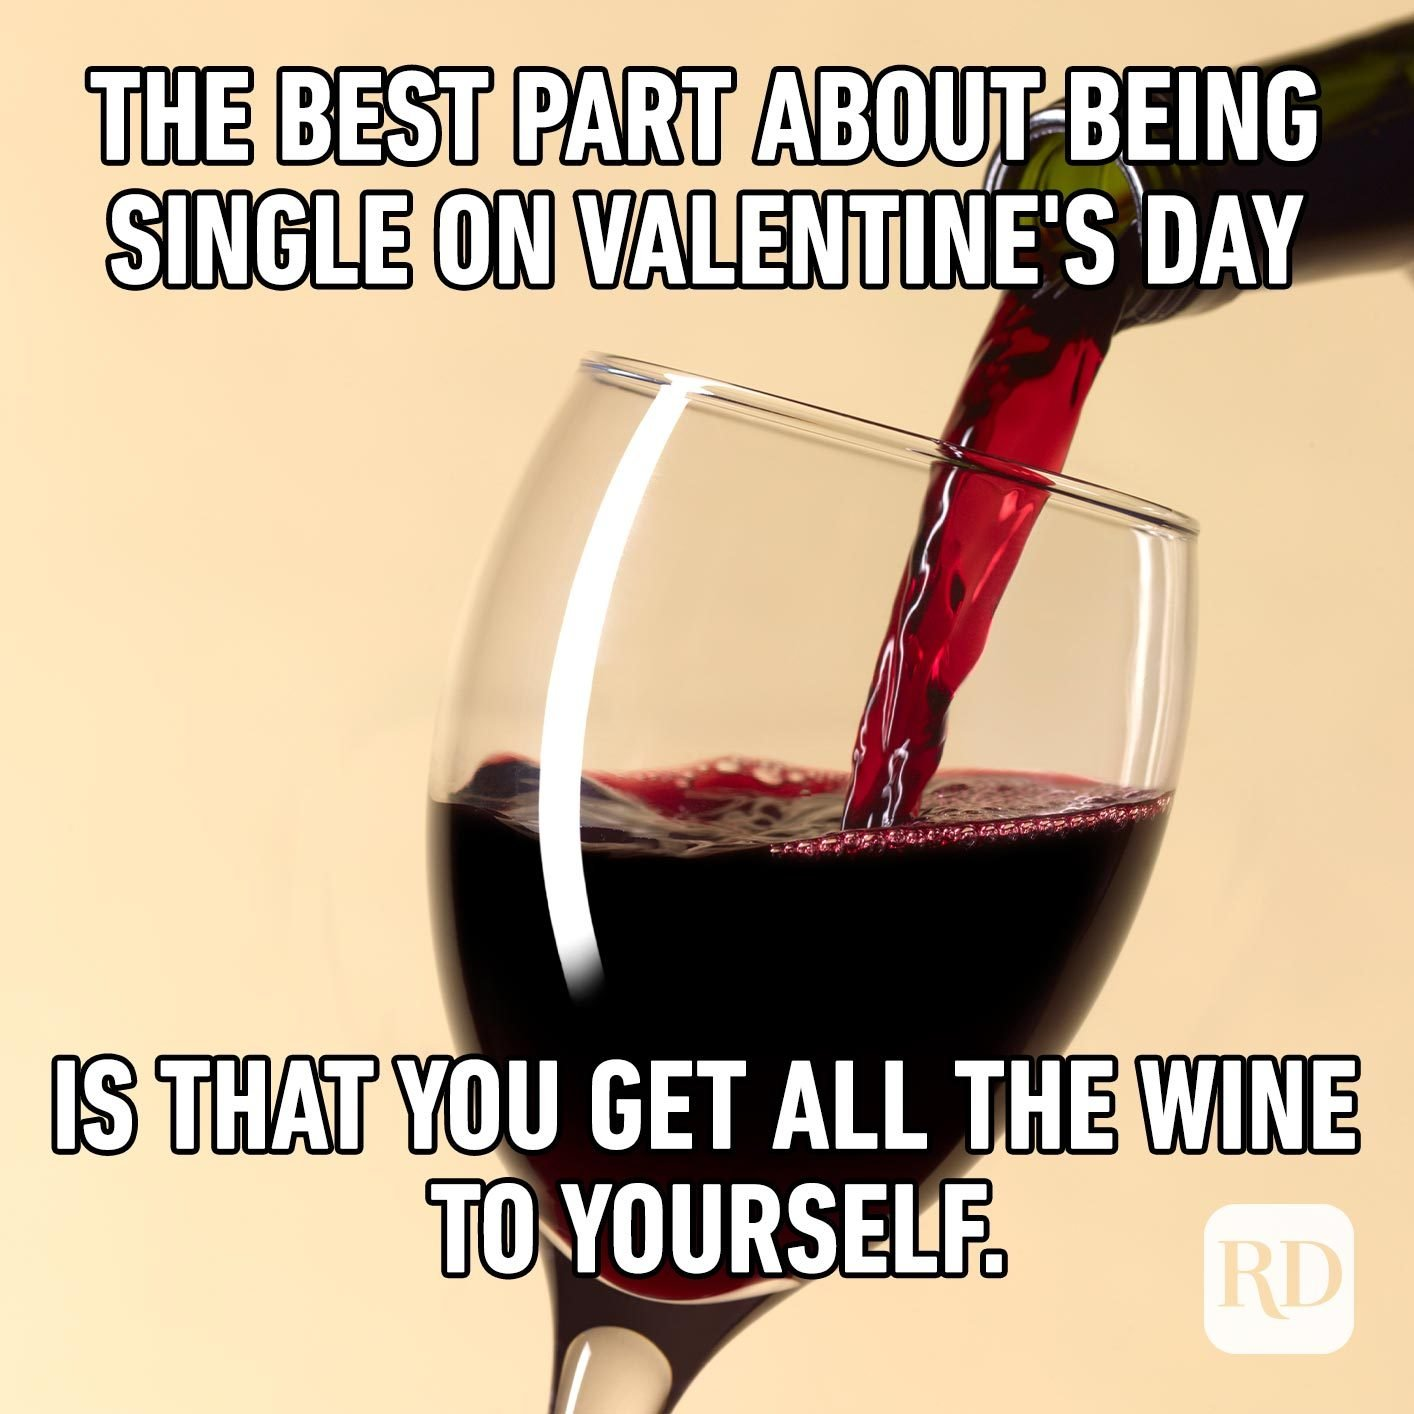 Pouring glass of wine. Meme text: The best part about being single on Valentine's Day is that you get all the wine to yourself.